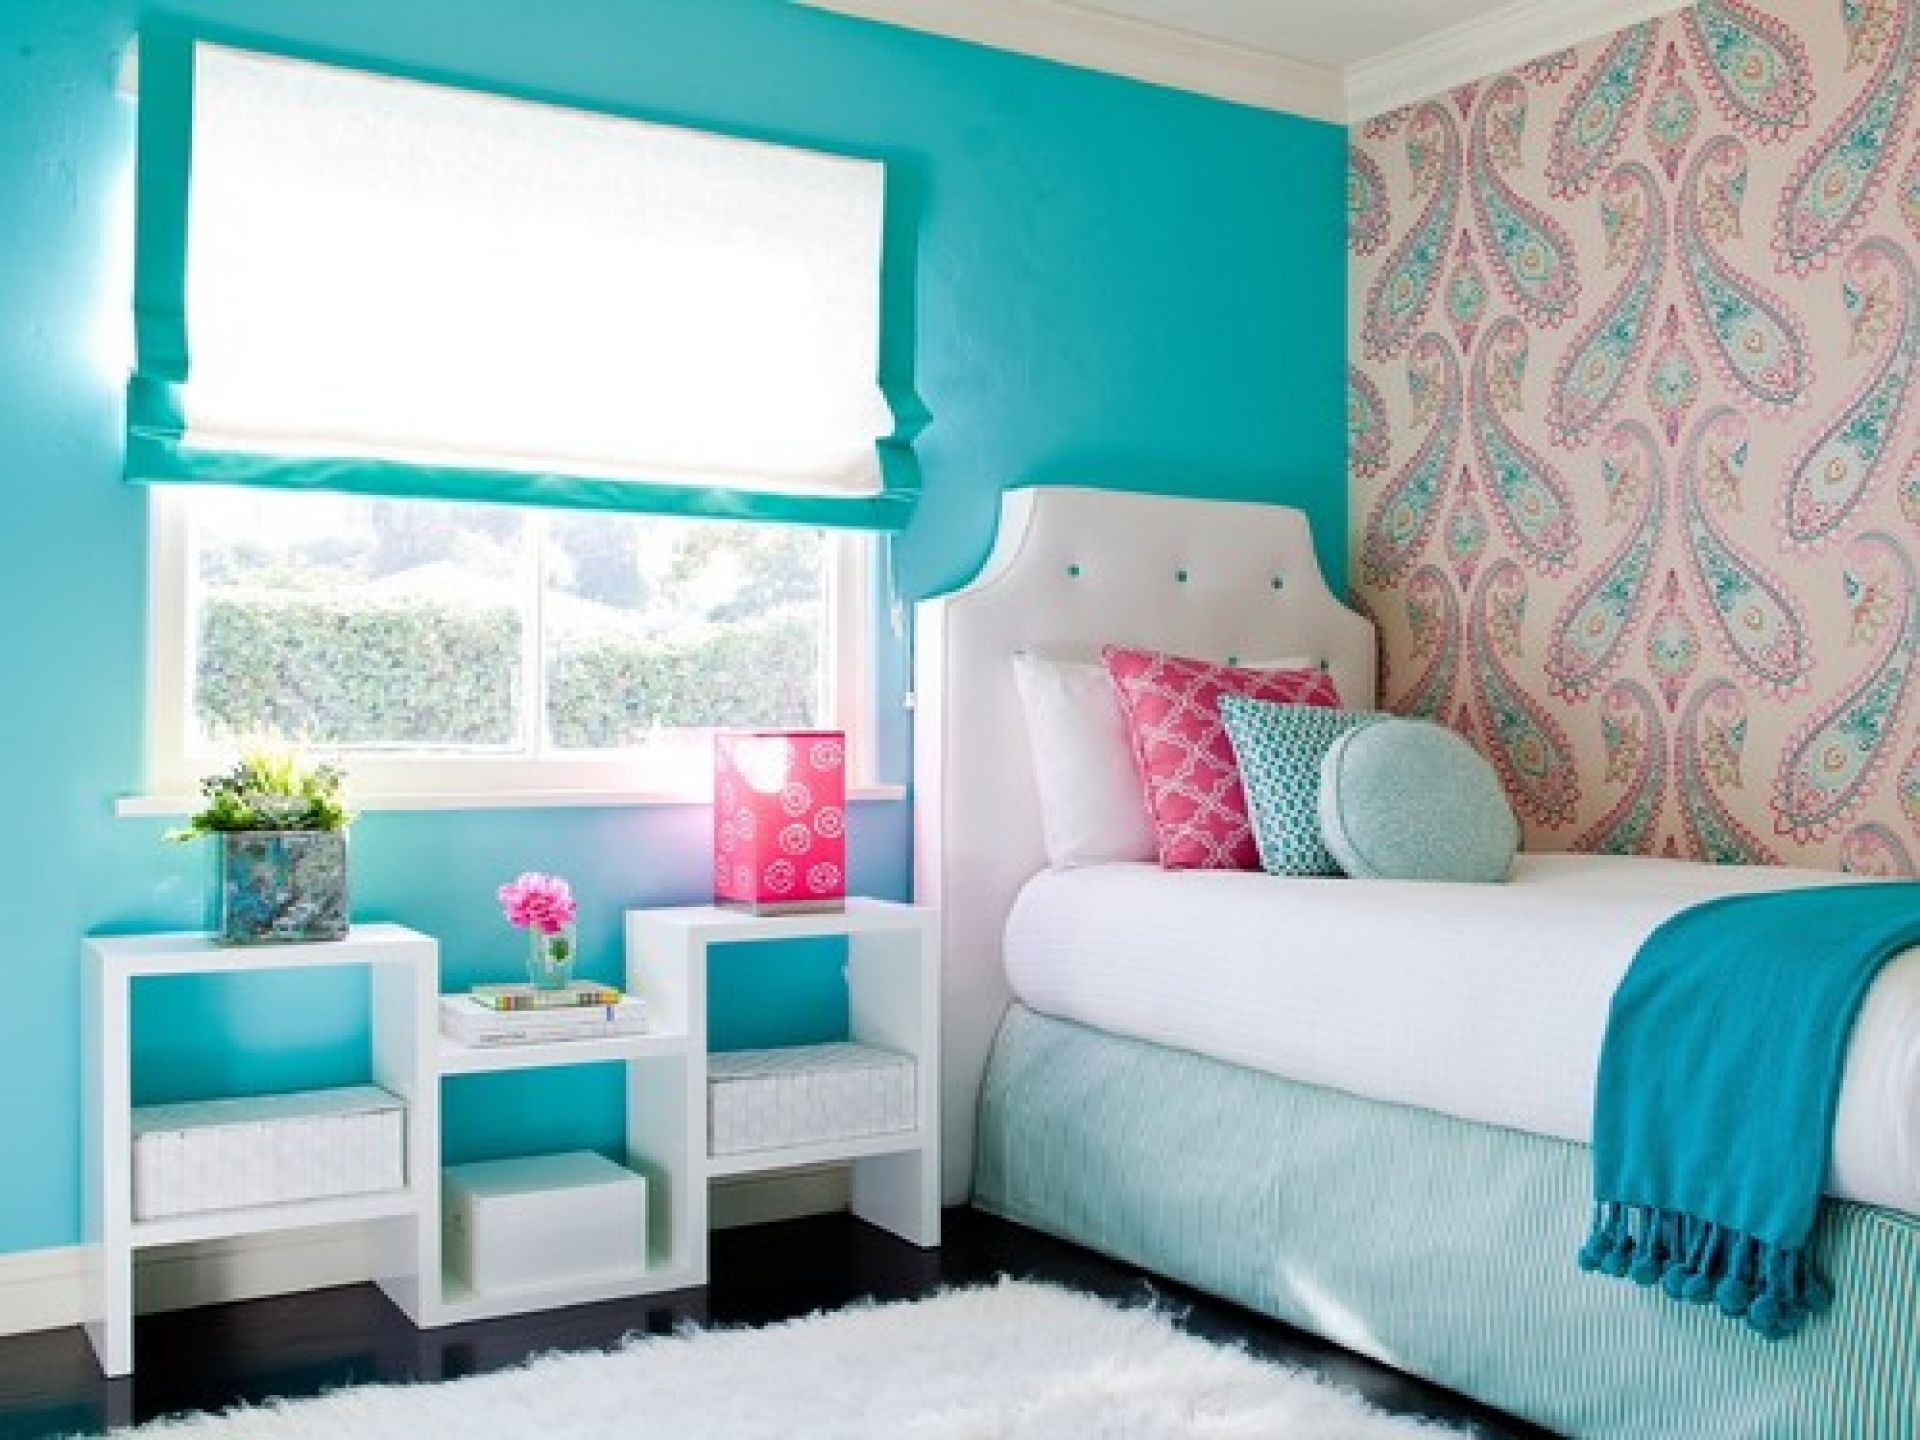 Simple Design Comfy Room Colors Teenage Girl Bedroom Wall Paint Ideas Colors  For Bedrooms For Teenage